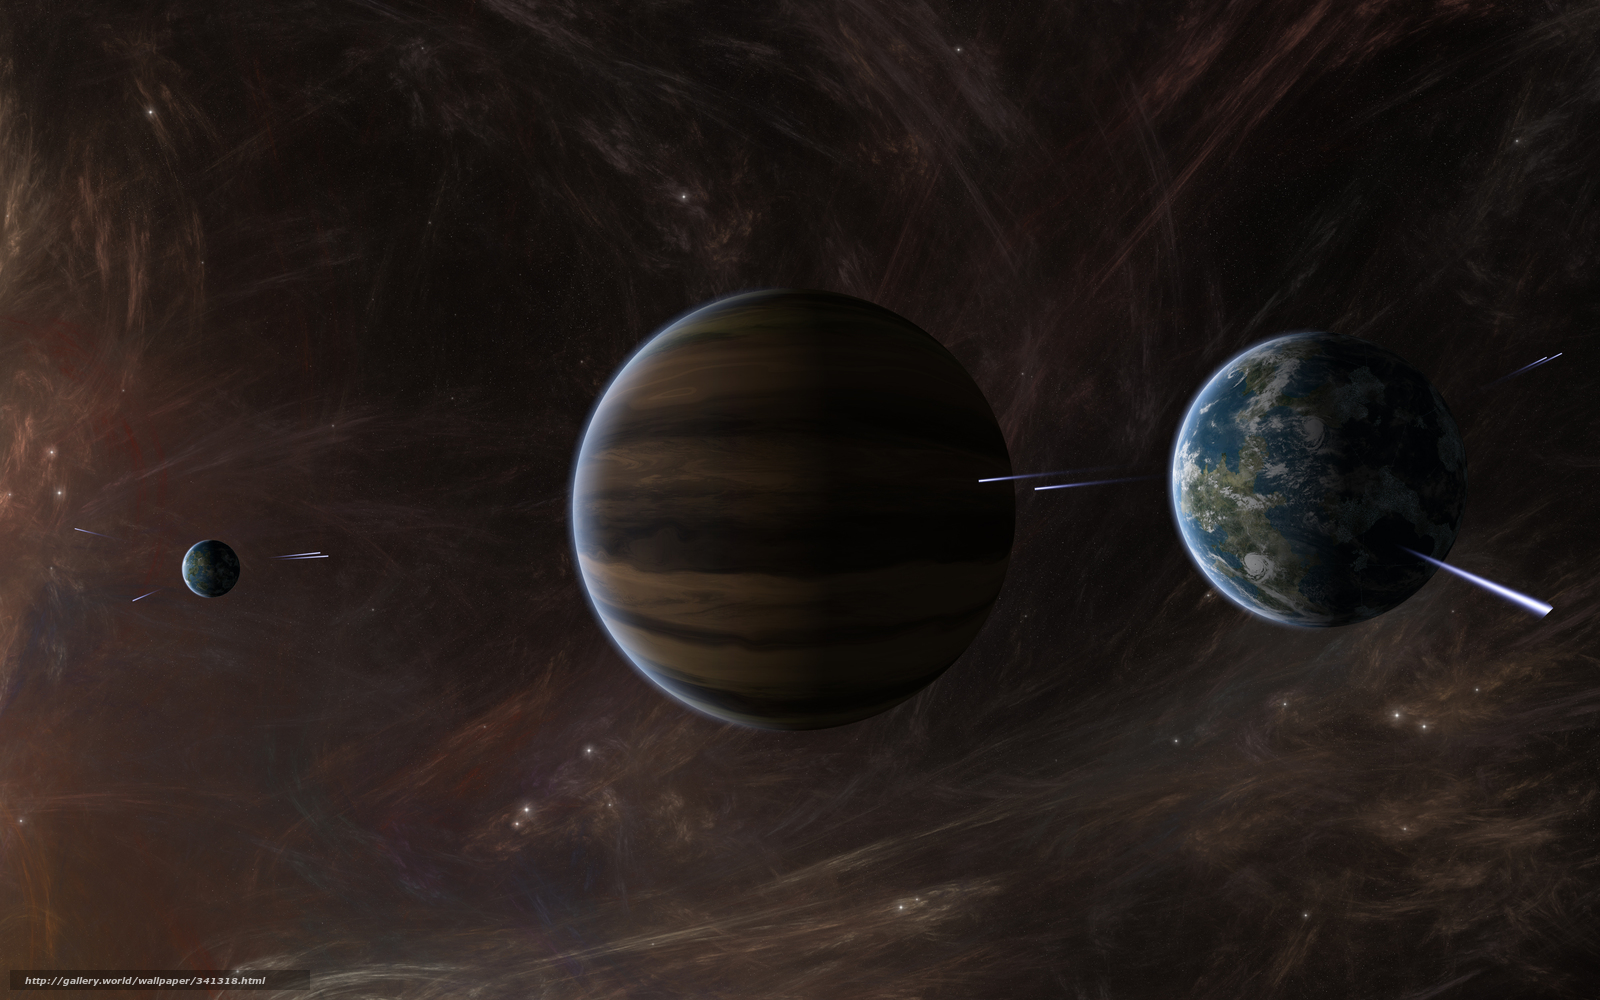 wallpapers of giant planets - photo #13